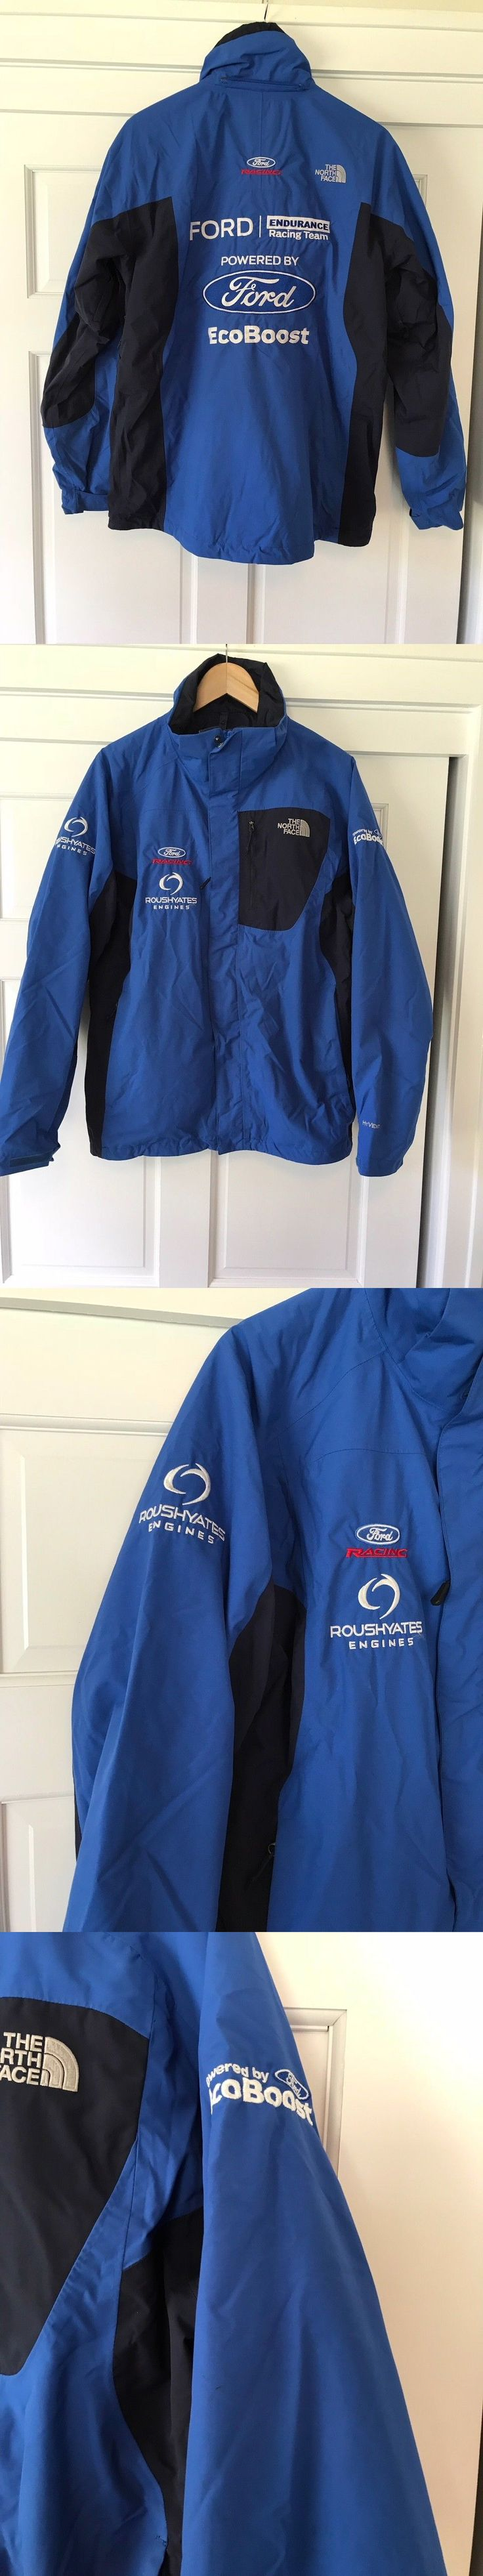 Racing-Formula 1 2876: Ford Gt, Roush Yates Ford Eco Boost , Daytona 24 And Lemans 24 Winning Jacket -> BUY IT NOW ONLY: $295.95 on eBay!